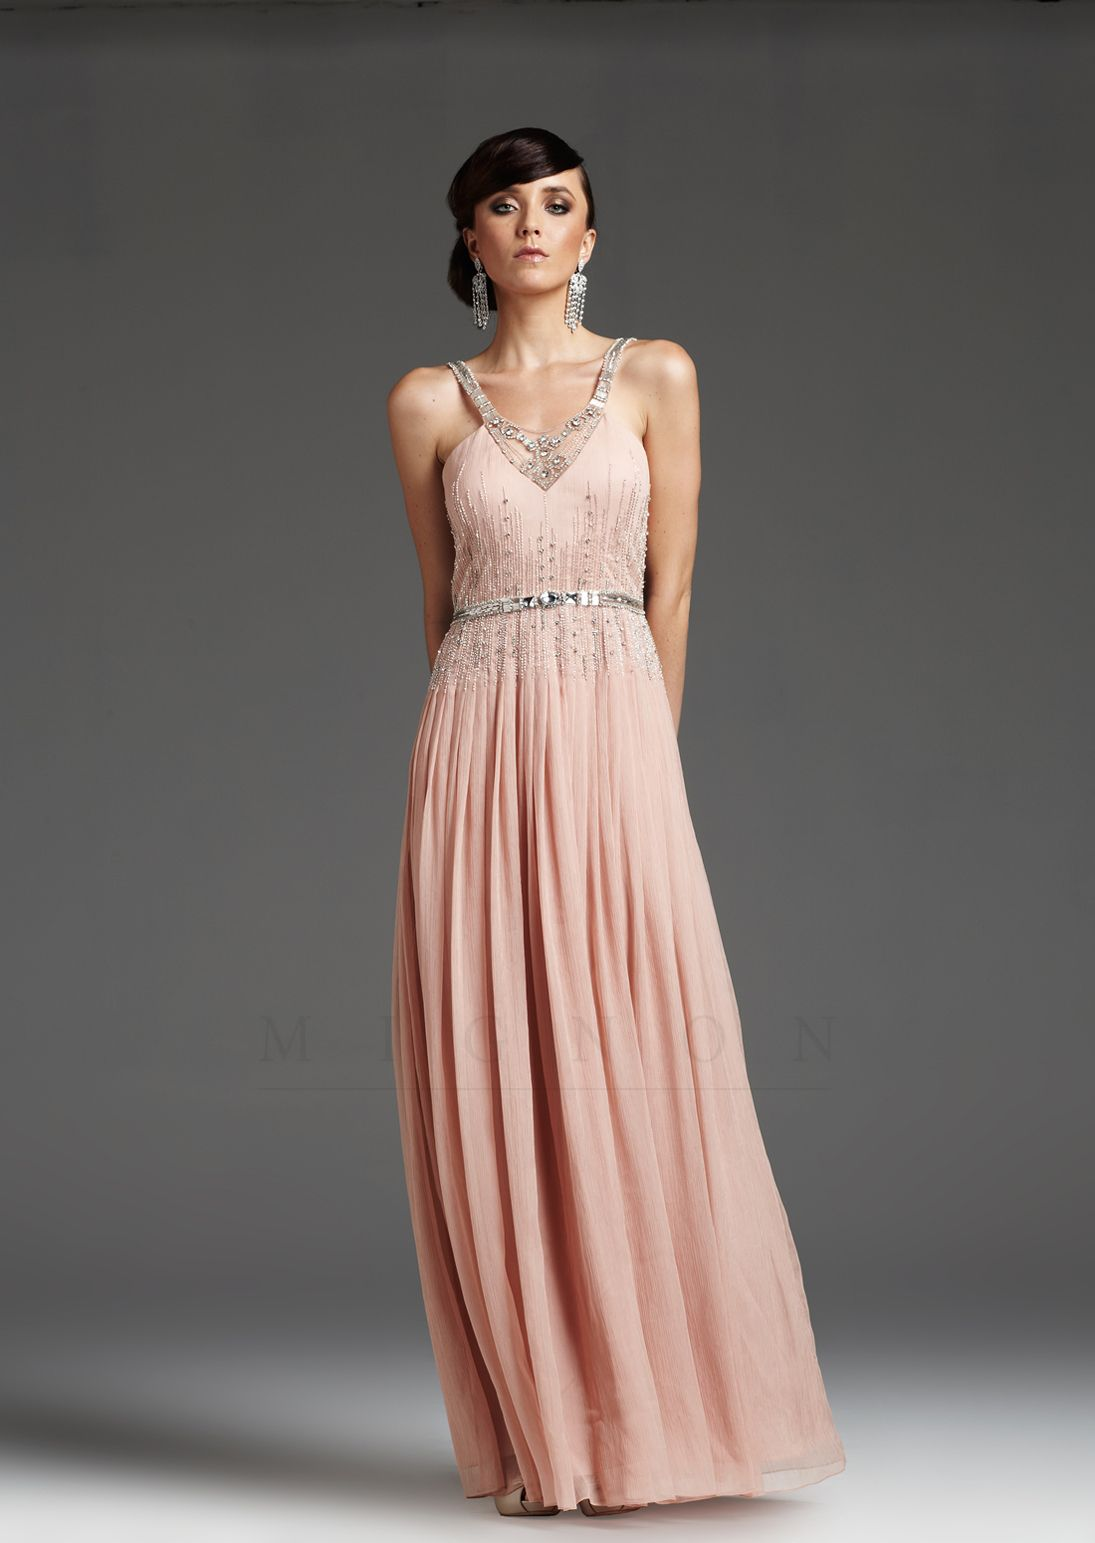 Unique Vintage | Pinterest | Powder pink, Vintage prom and Retro dress